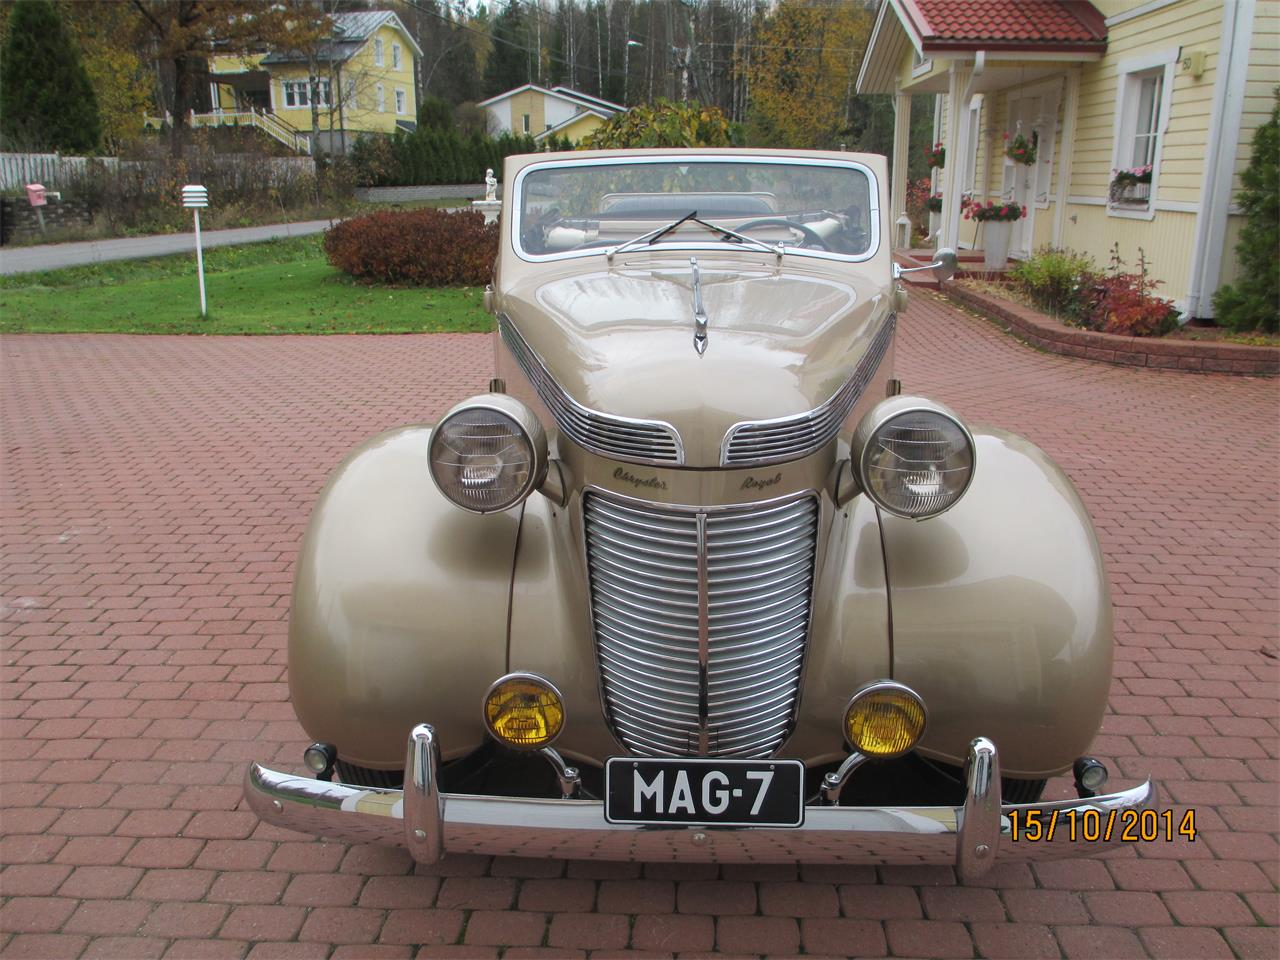 Large Picture of 1937 Chrysler Royal located in Helsinki Vantaa - $79,000.00 - OTNV